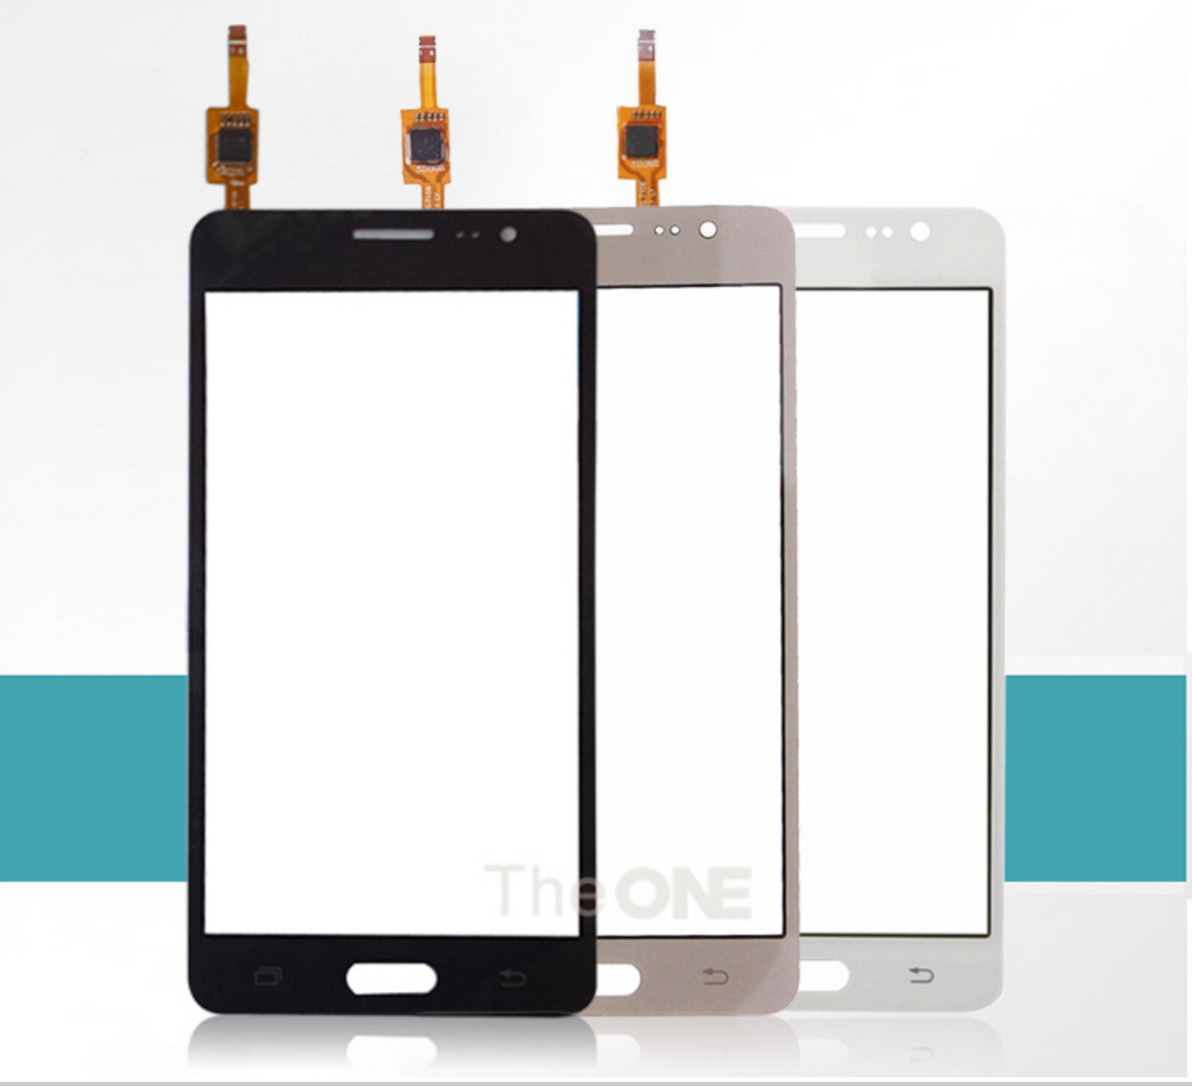 Oem Samsung Galaxy On5 Sm G550fy G550t Touch Screen Digitizer Glass Lcd Touchscreen S5 White 1 Of 1free Shipping